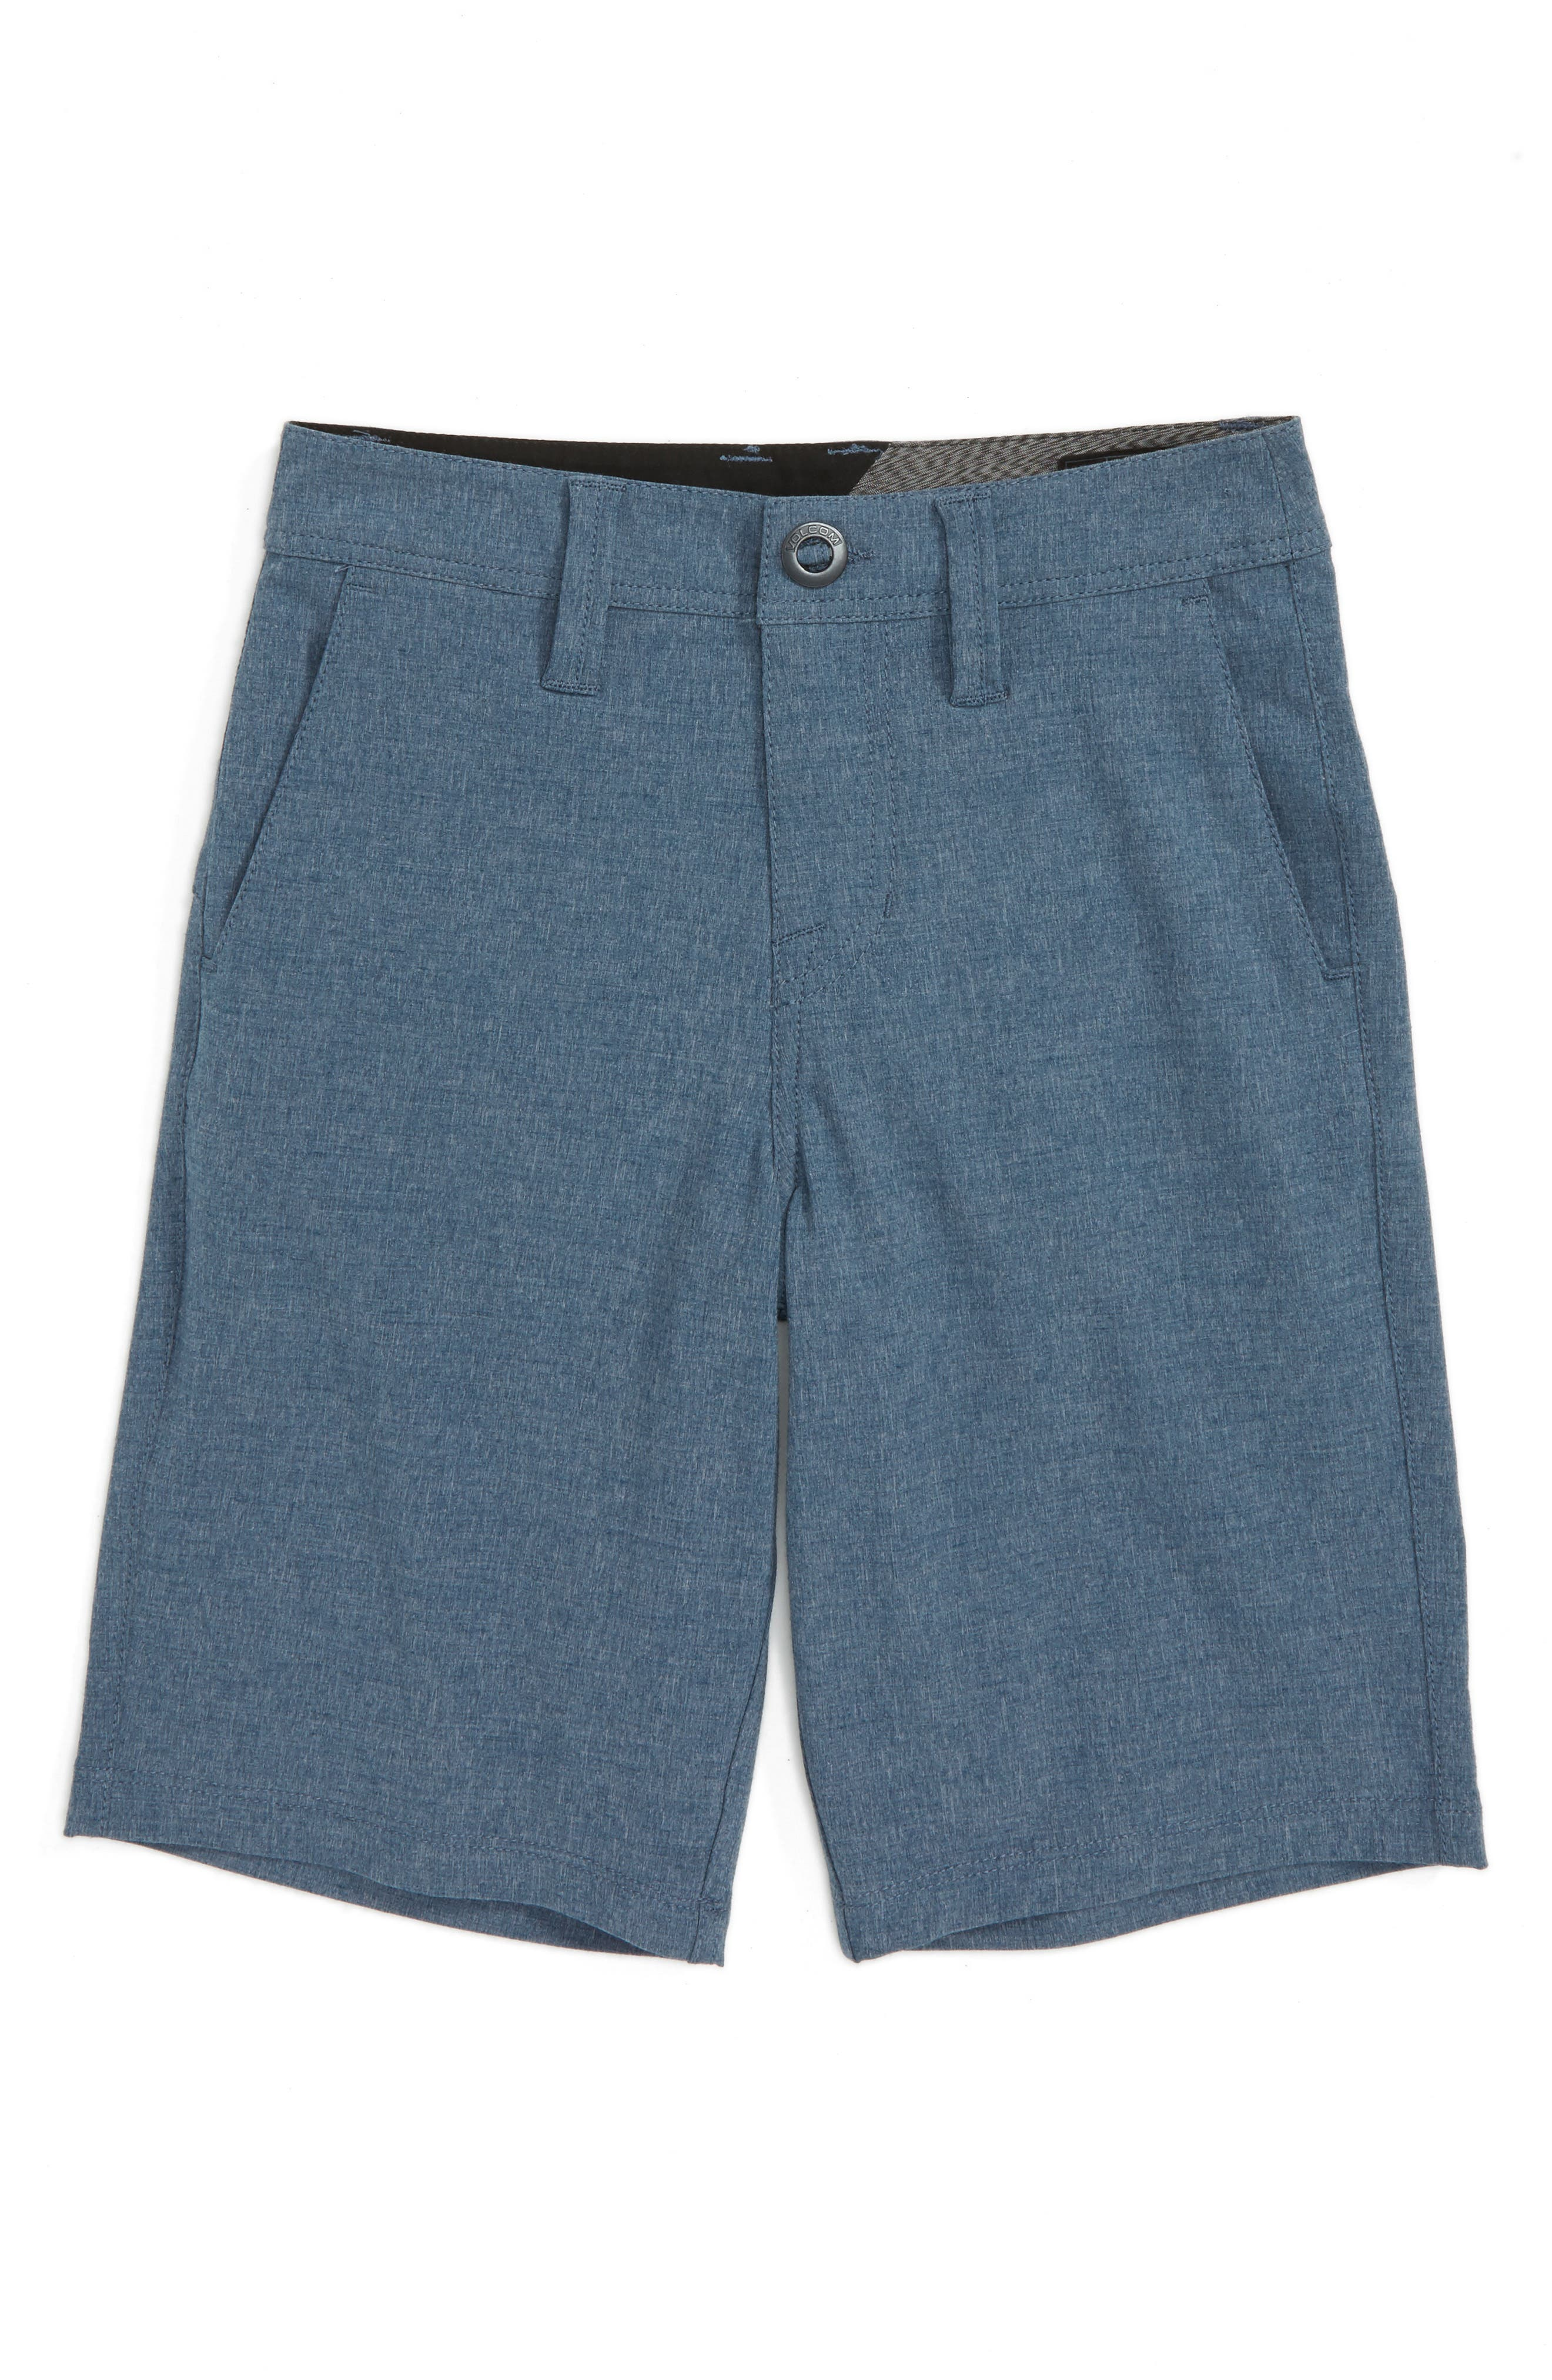 Volcom Surf N' Turf Static Hybrid Shorts (Toddler Boys, Little Boys & Big Boys)